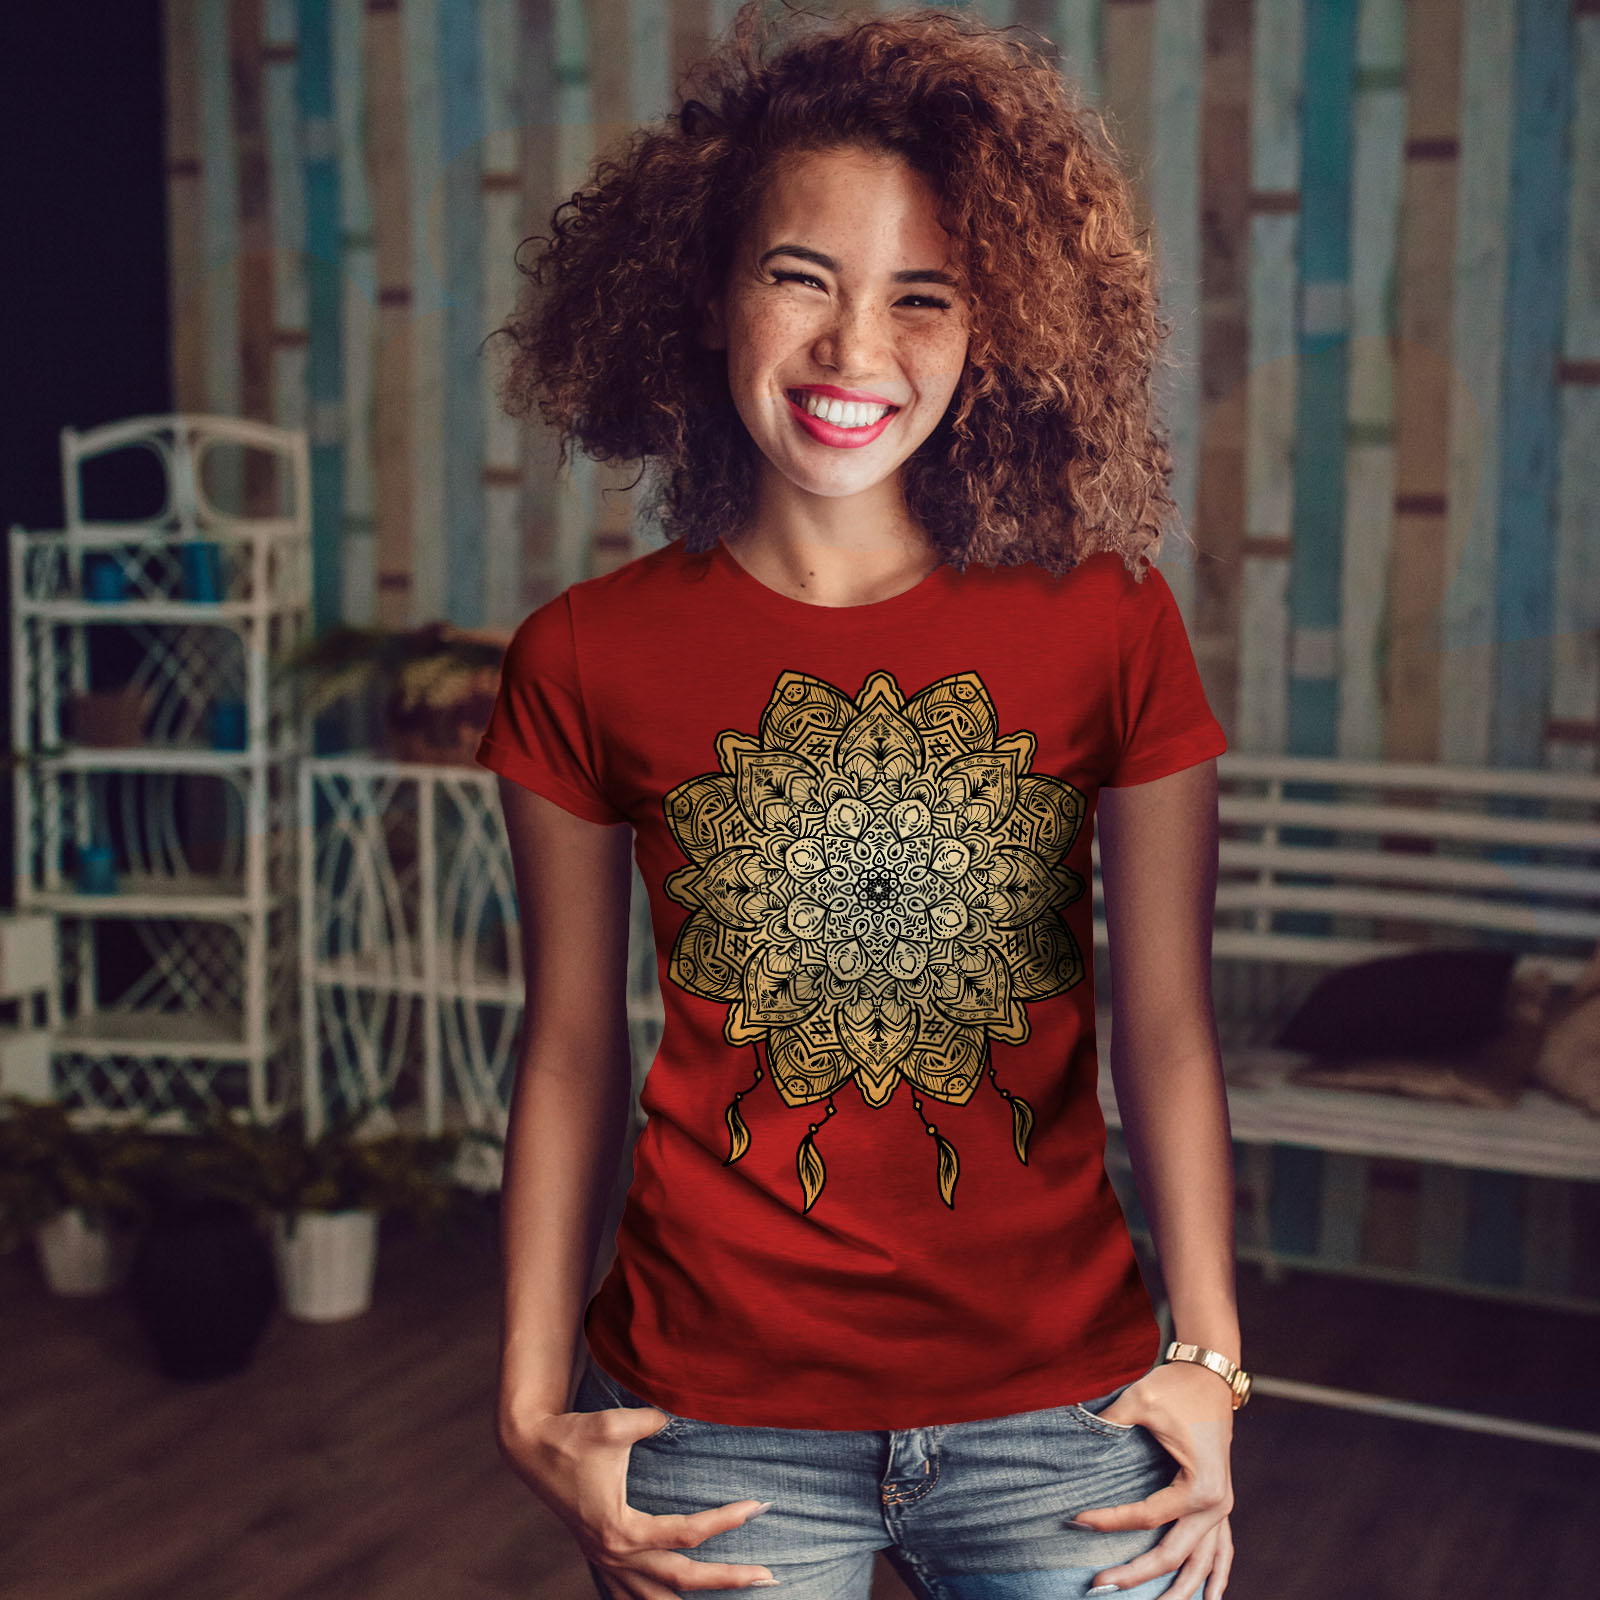 Wellcoda-Mandala-Yoga-Womens-T-shirt-Spiritual-Casual-Design-Printed-Tee thumbnail 10